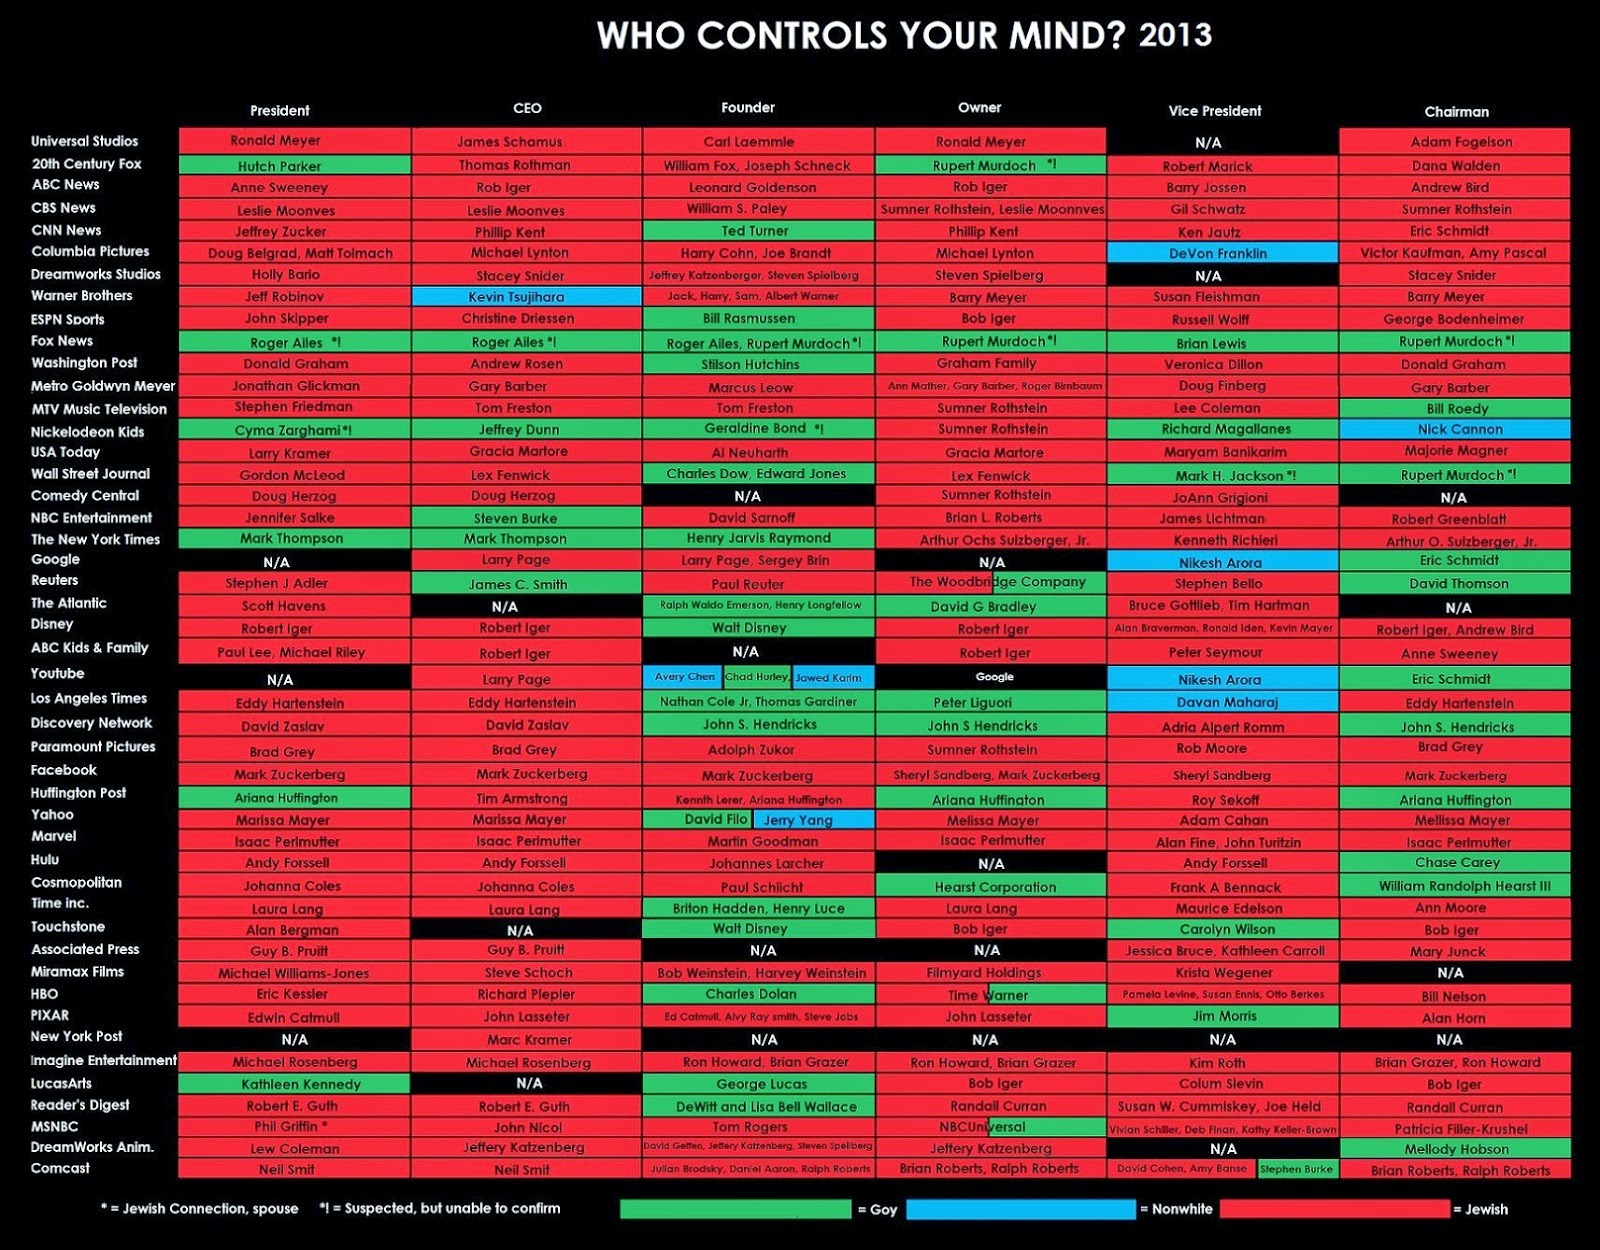 Who+controls+your+mind+2013.jpg